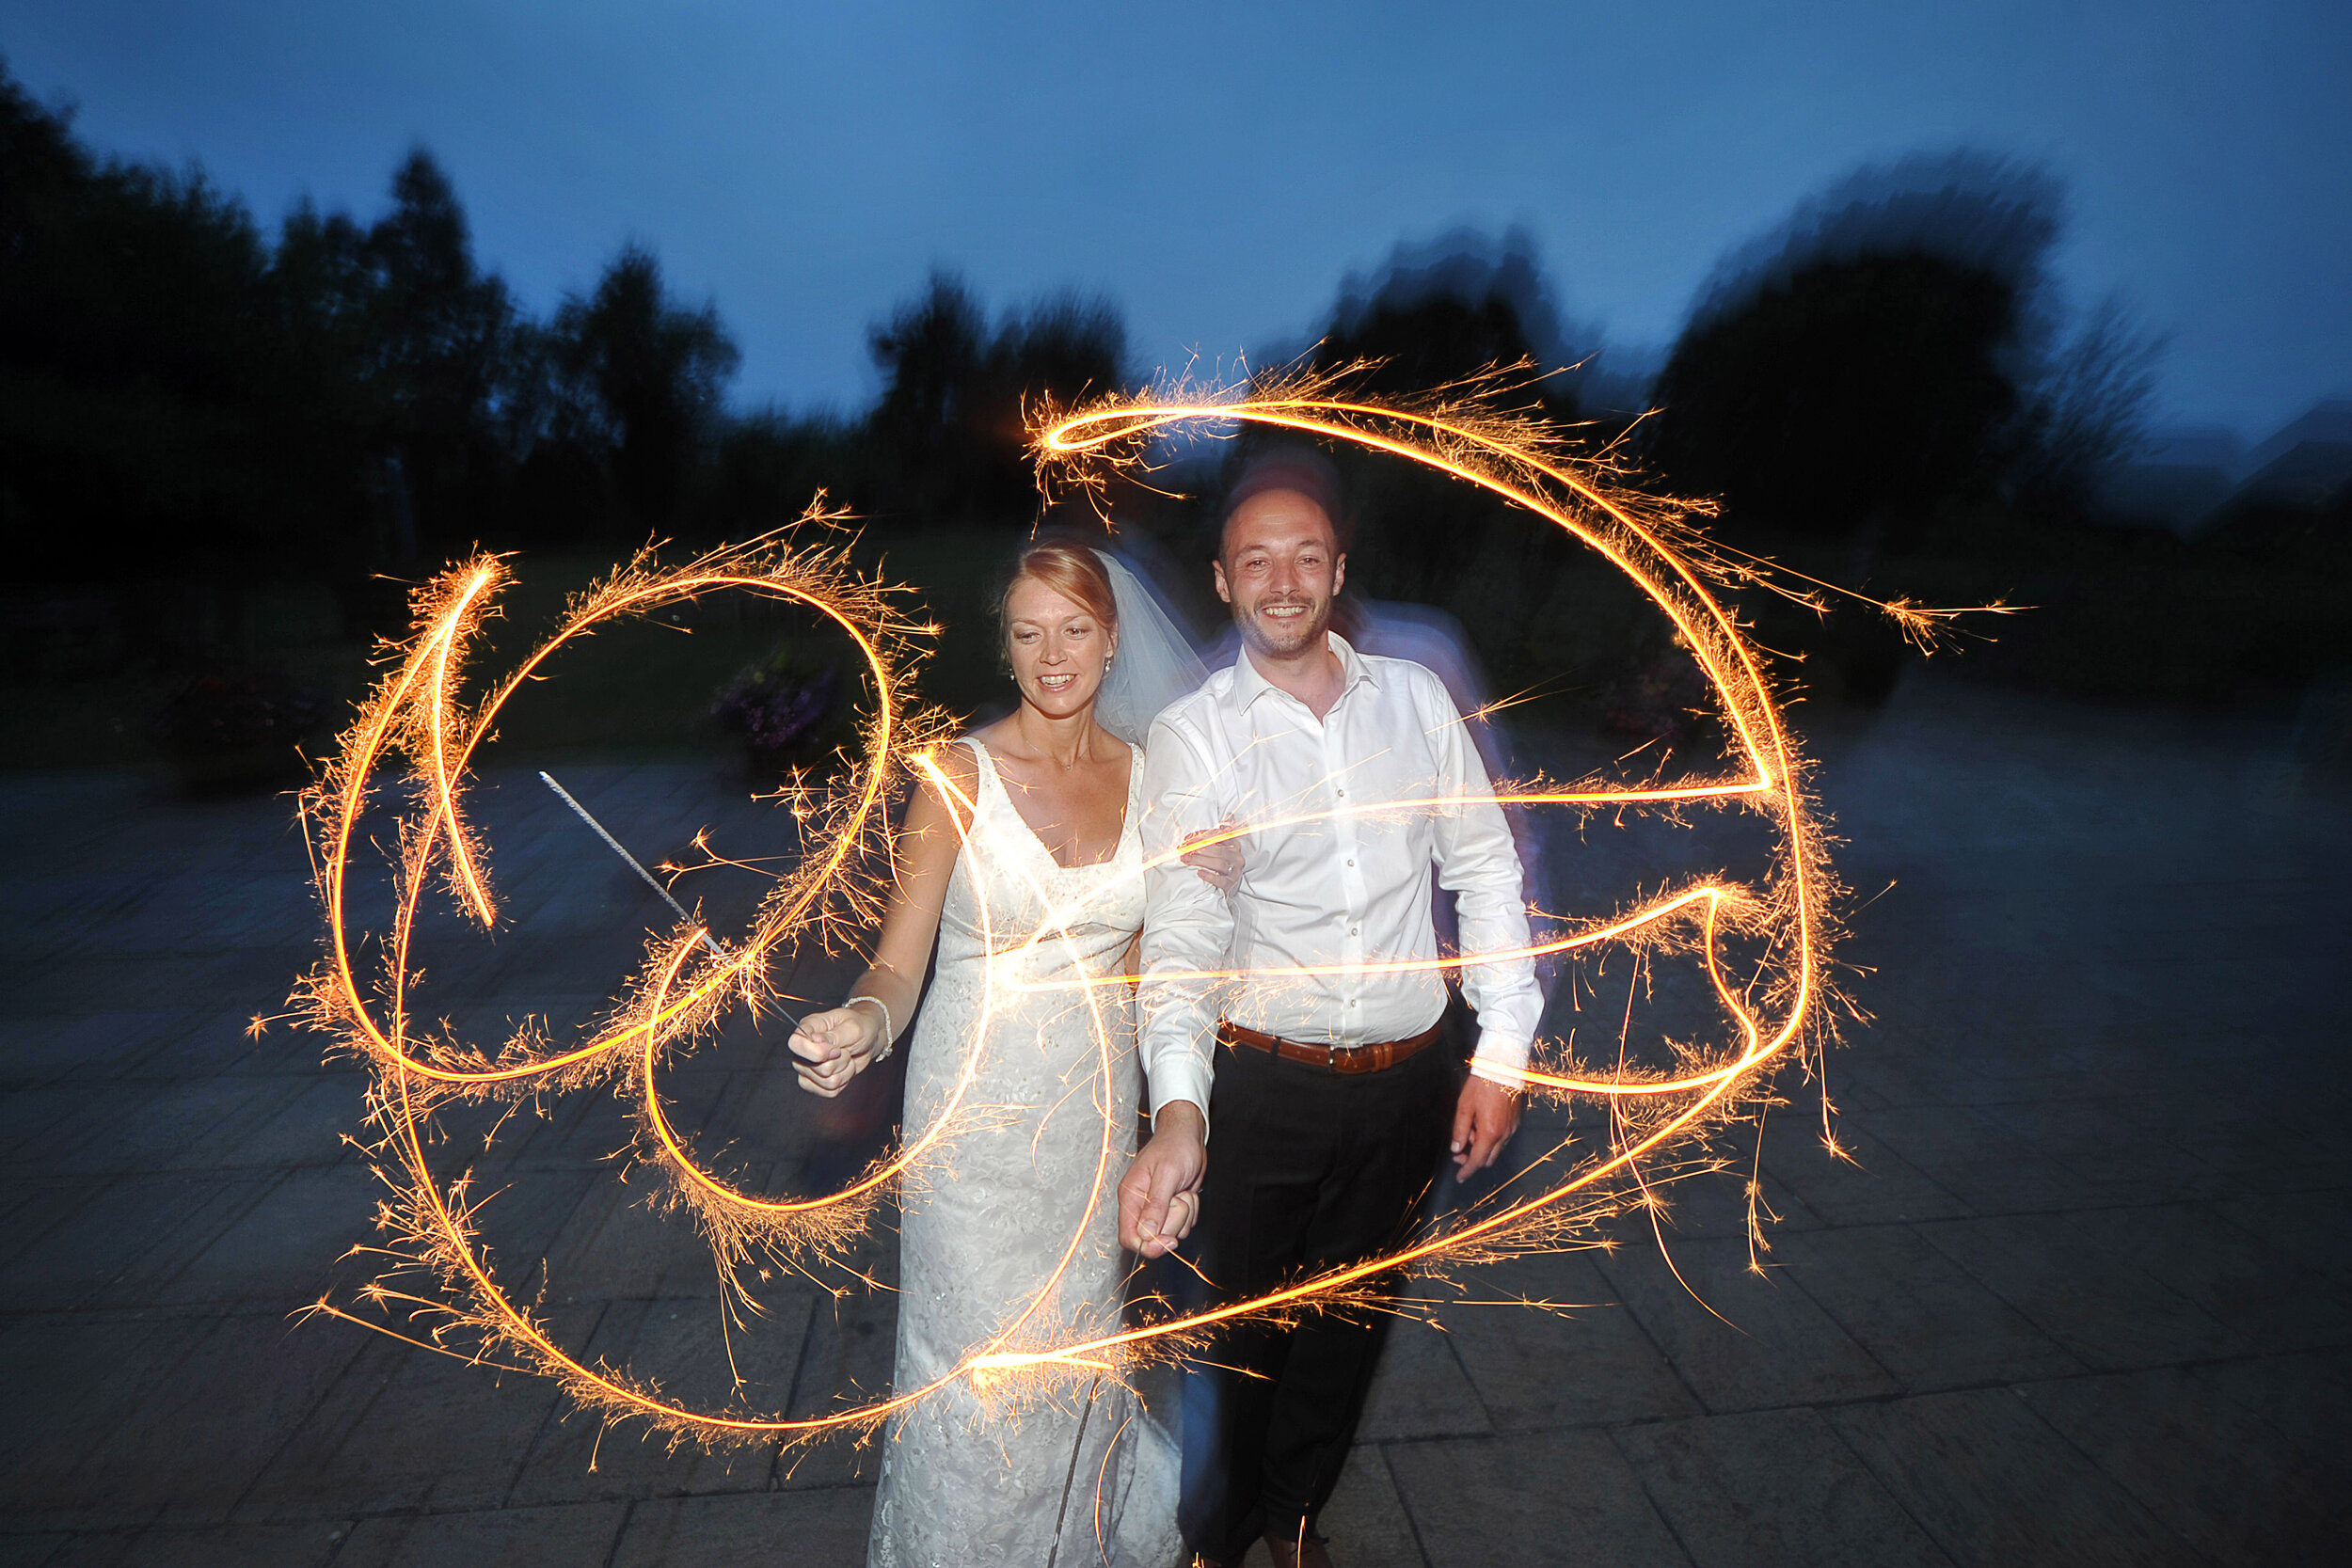 New Years Eve Wedding - Claim New Year's Eve as your own and celebrate your wedding in style. With extended bar and live music hours so that you can see in the new year as man and wife with your loved ones around you.